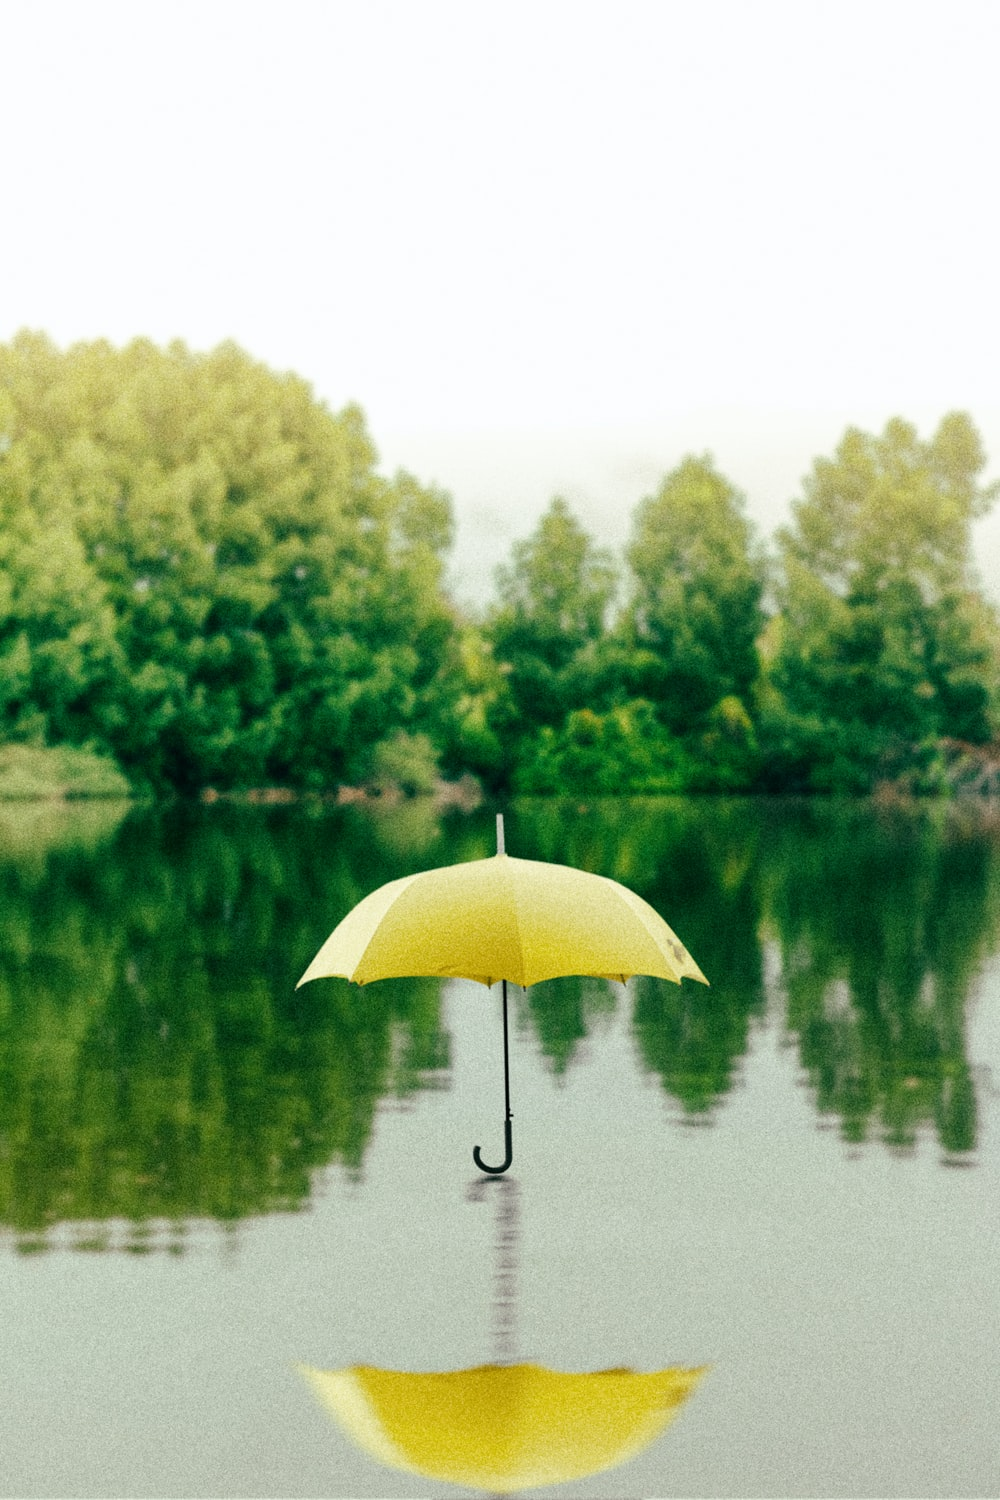 yellow umbrella on surface of water at daytime